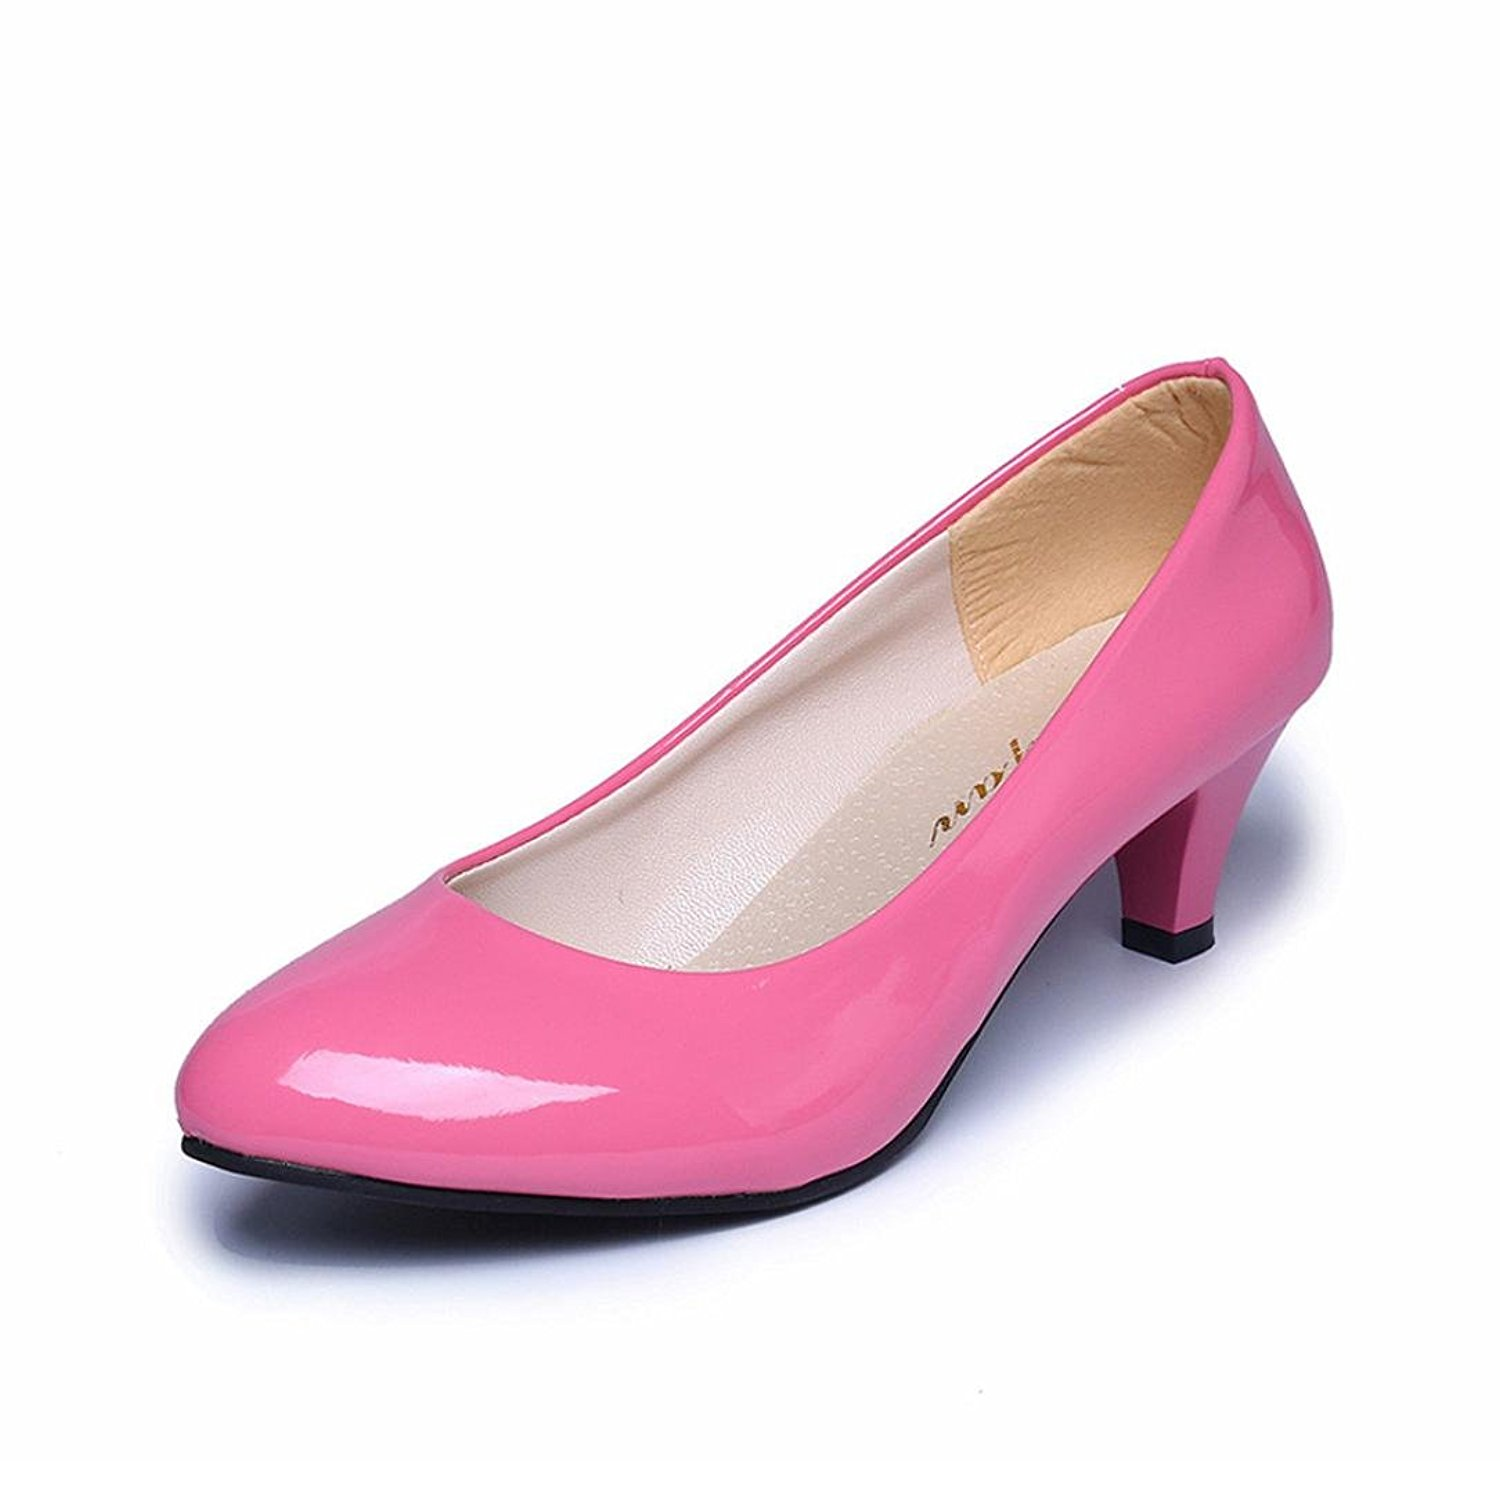 a081f9cd6f6 Get Quotations · MChoice Women s Heels Shoes